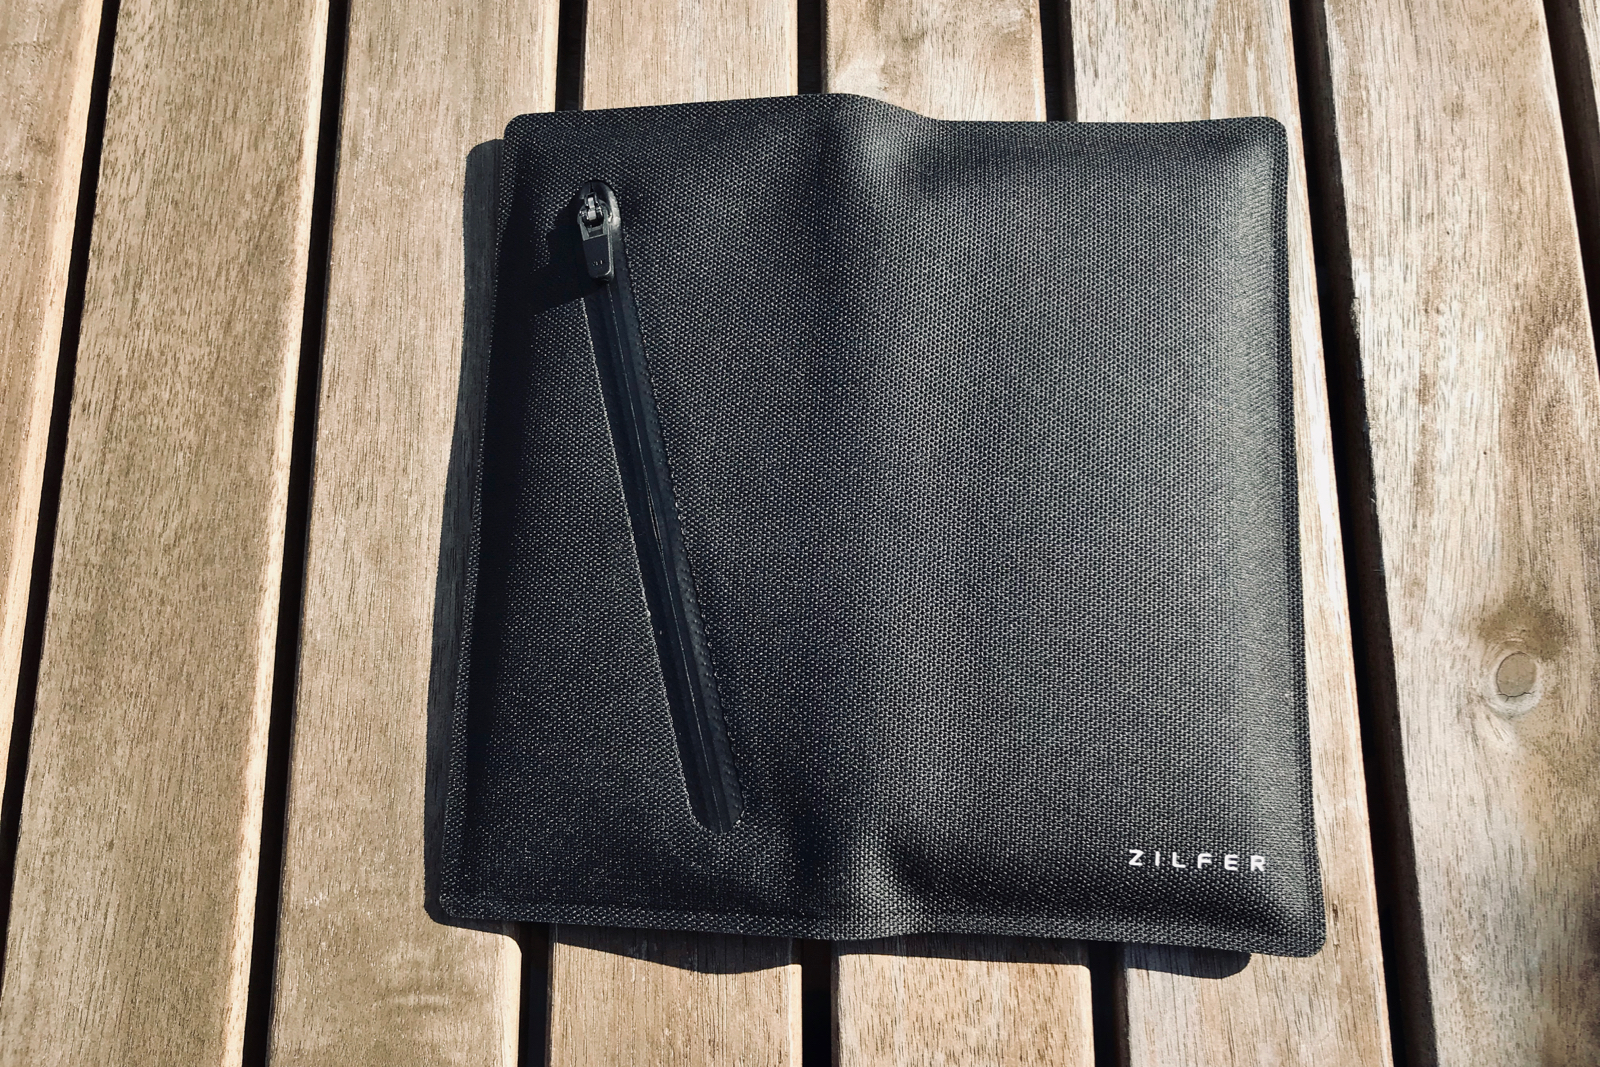 Zilfer Cycling Phone Wallet